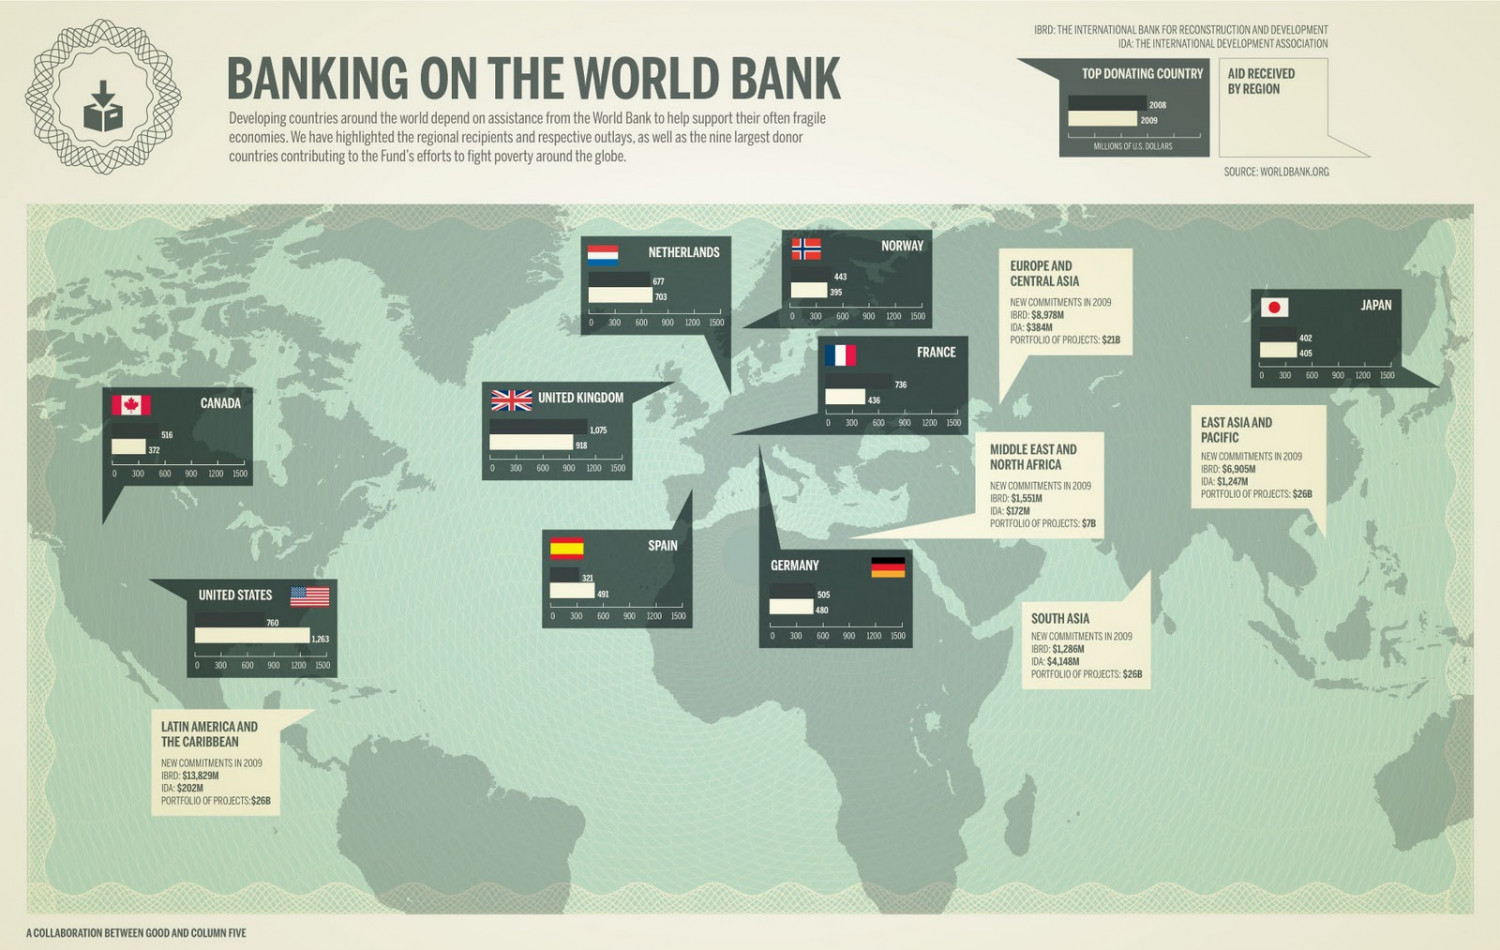 Banking on the World Bank  Infographic